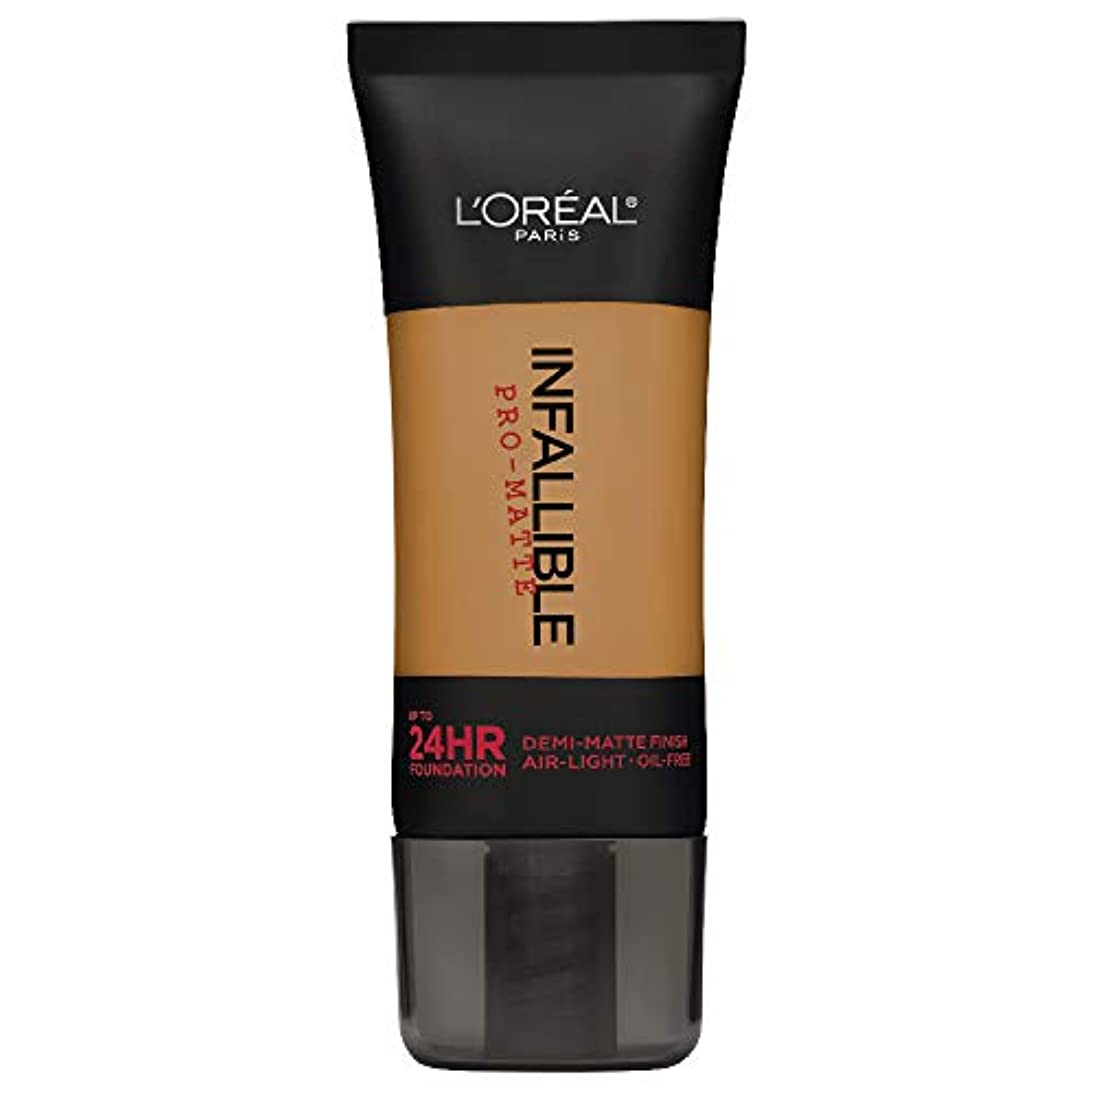 クモノミネート哲学者L'Oreal Paris Infallible Pro-Matte Foundation Makeup, 111 Soft Sable, 1 fl. oz[並行輸入品]